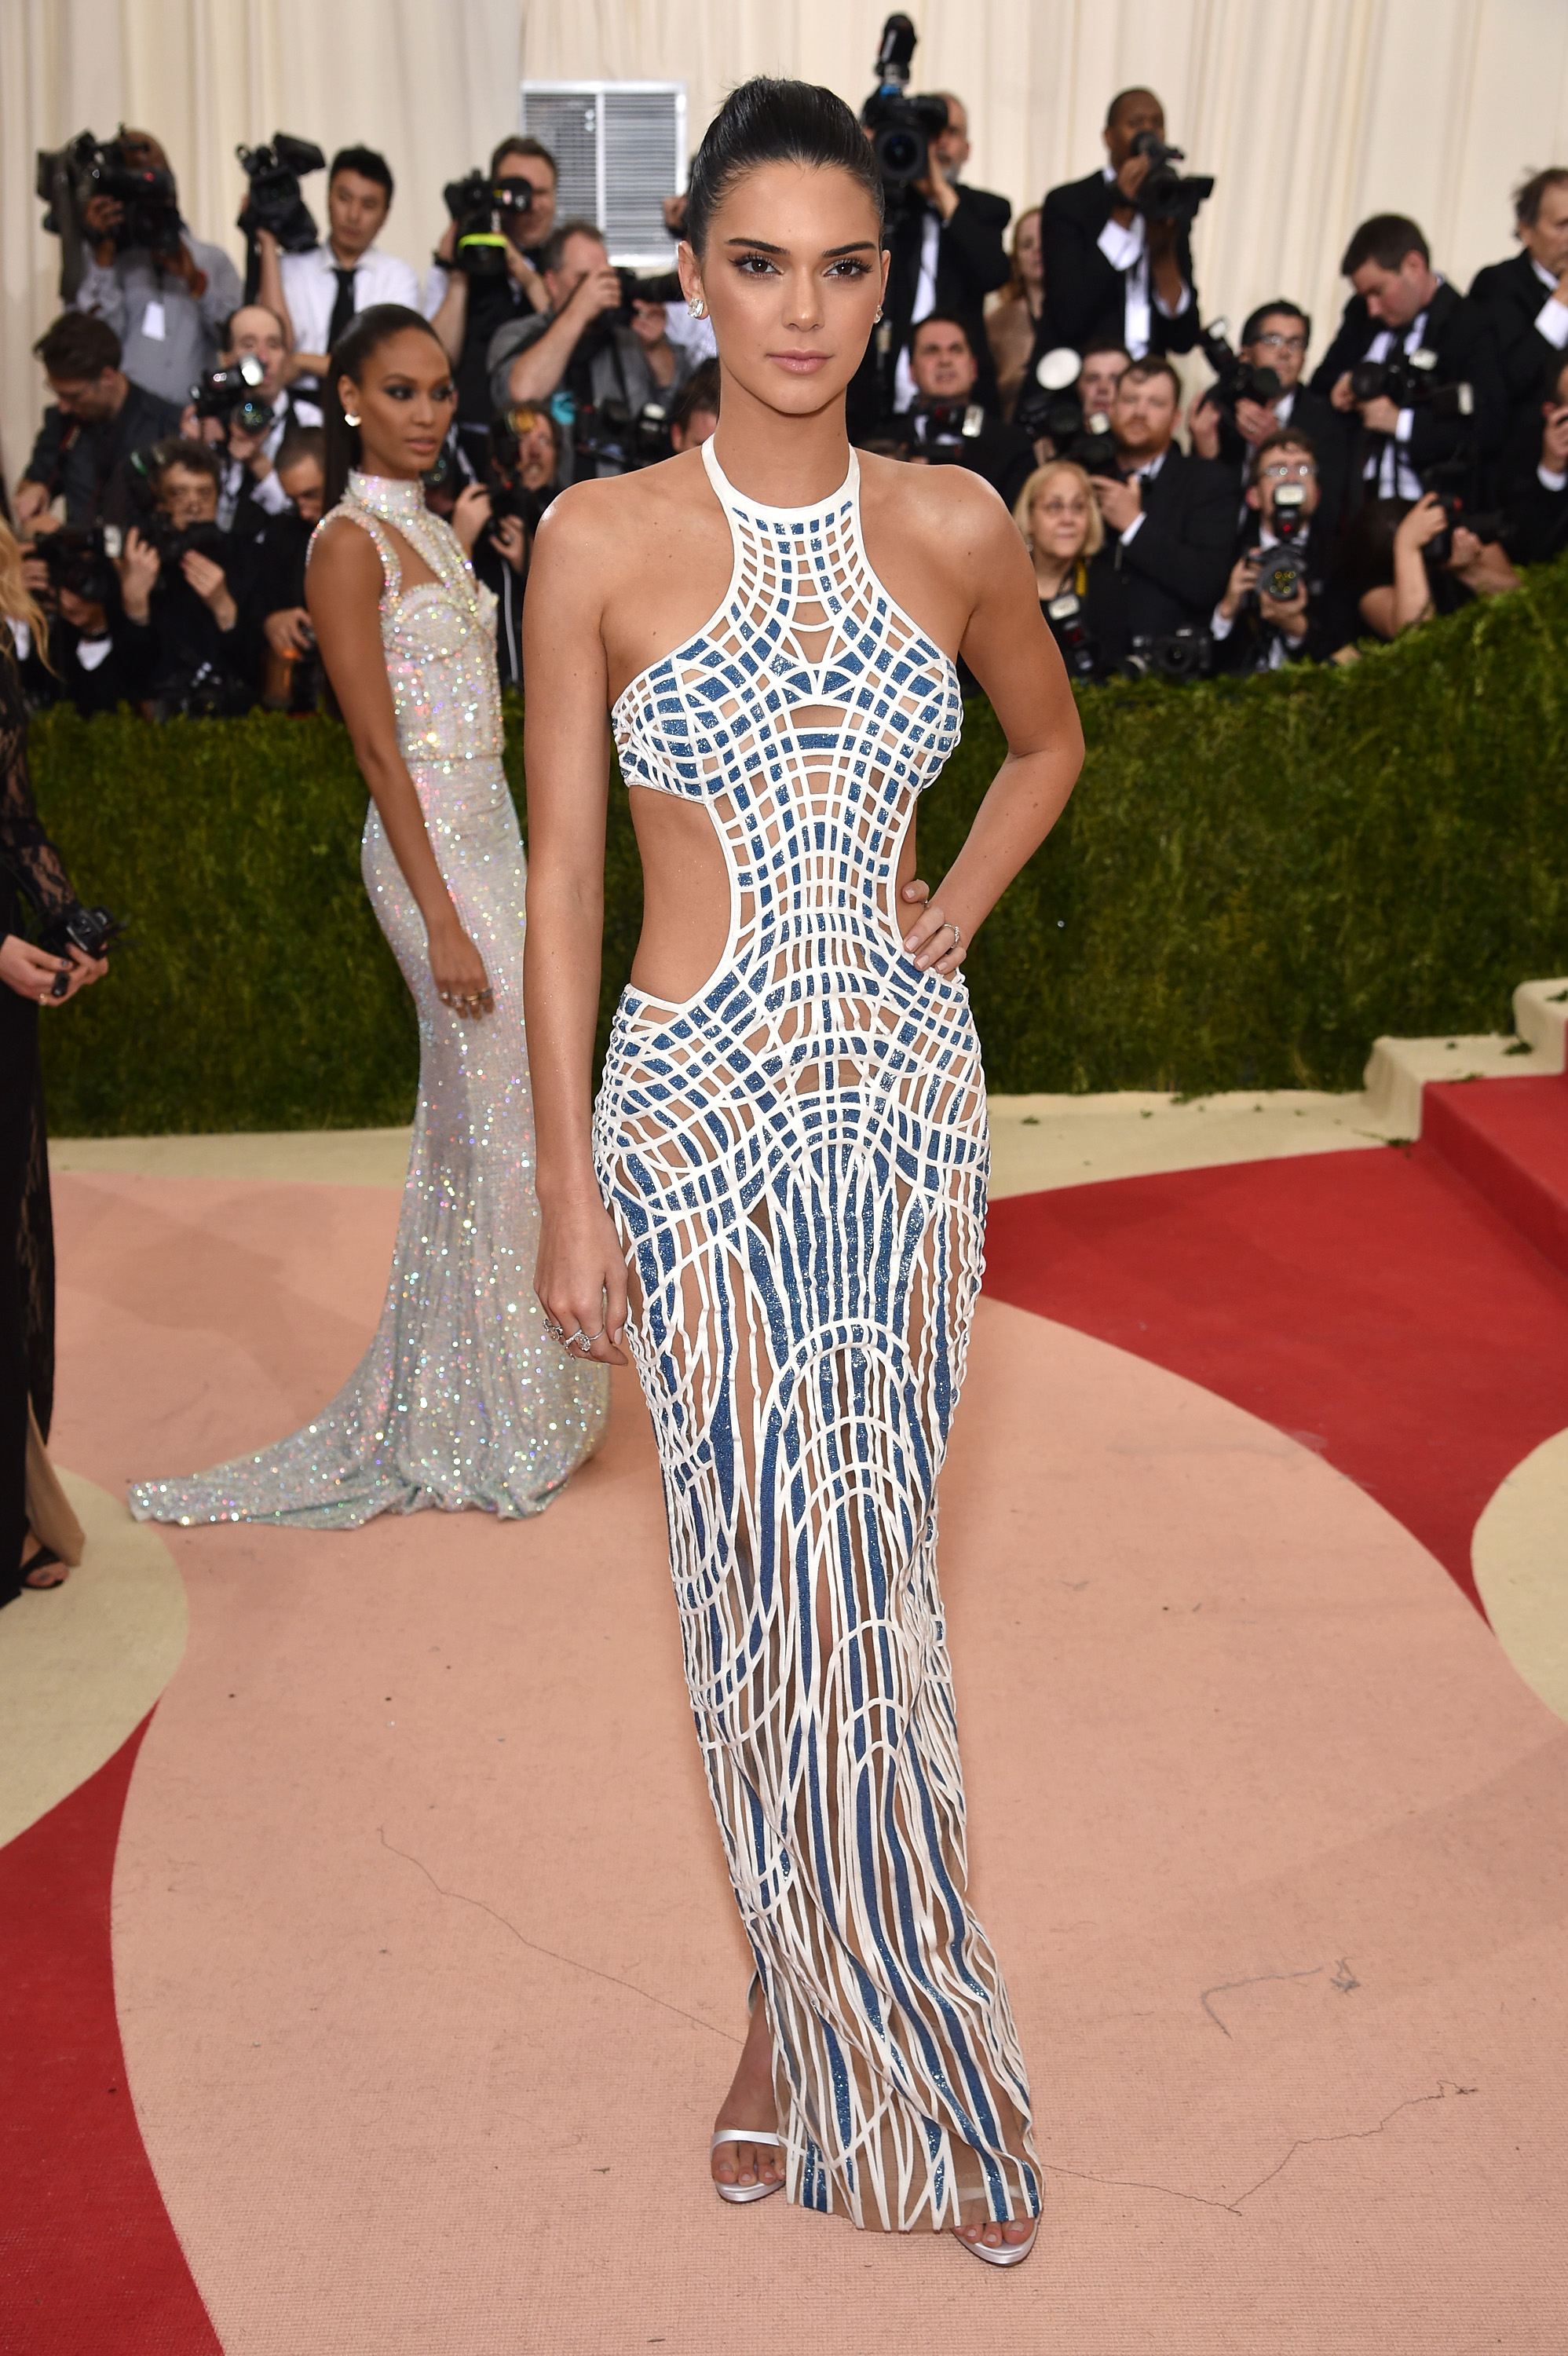 The Best Dressed Celebrities at the 2017 Met Gala - Forbes